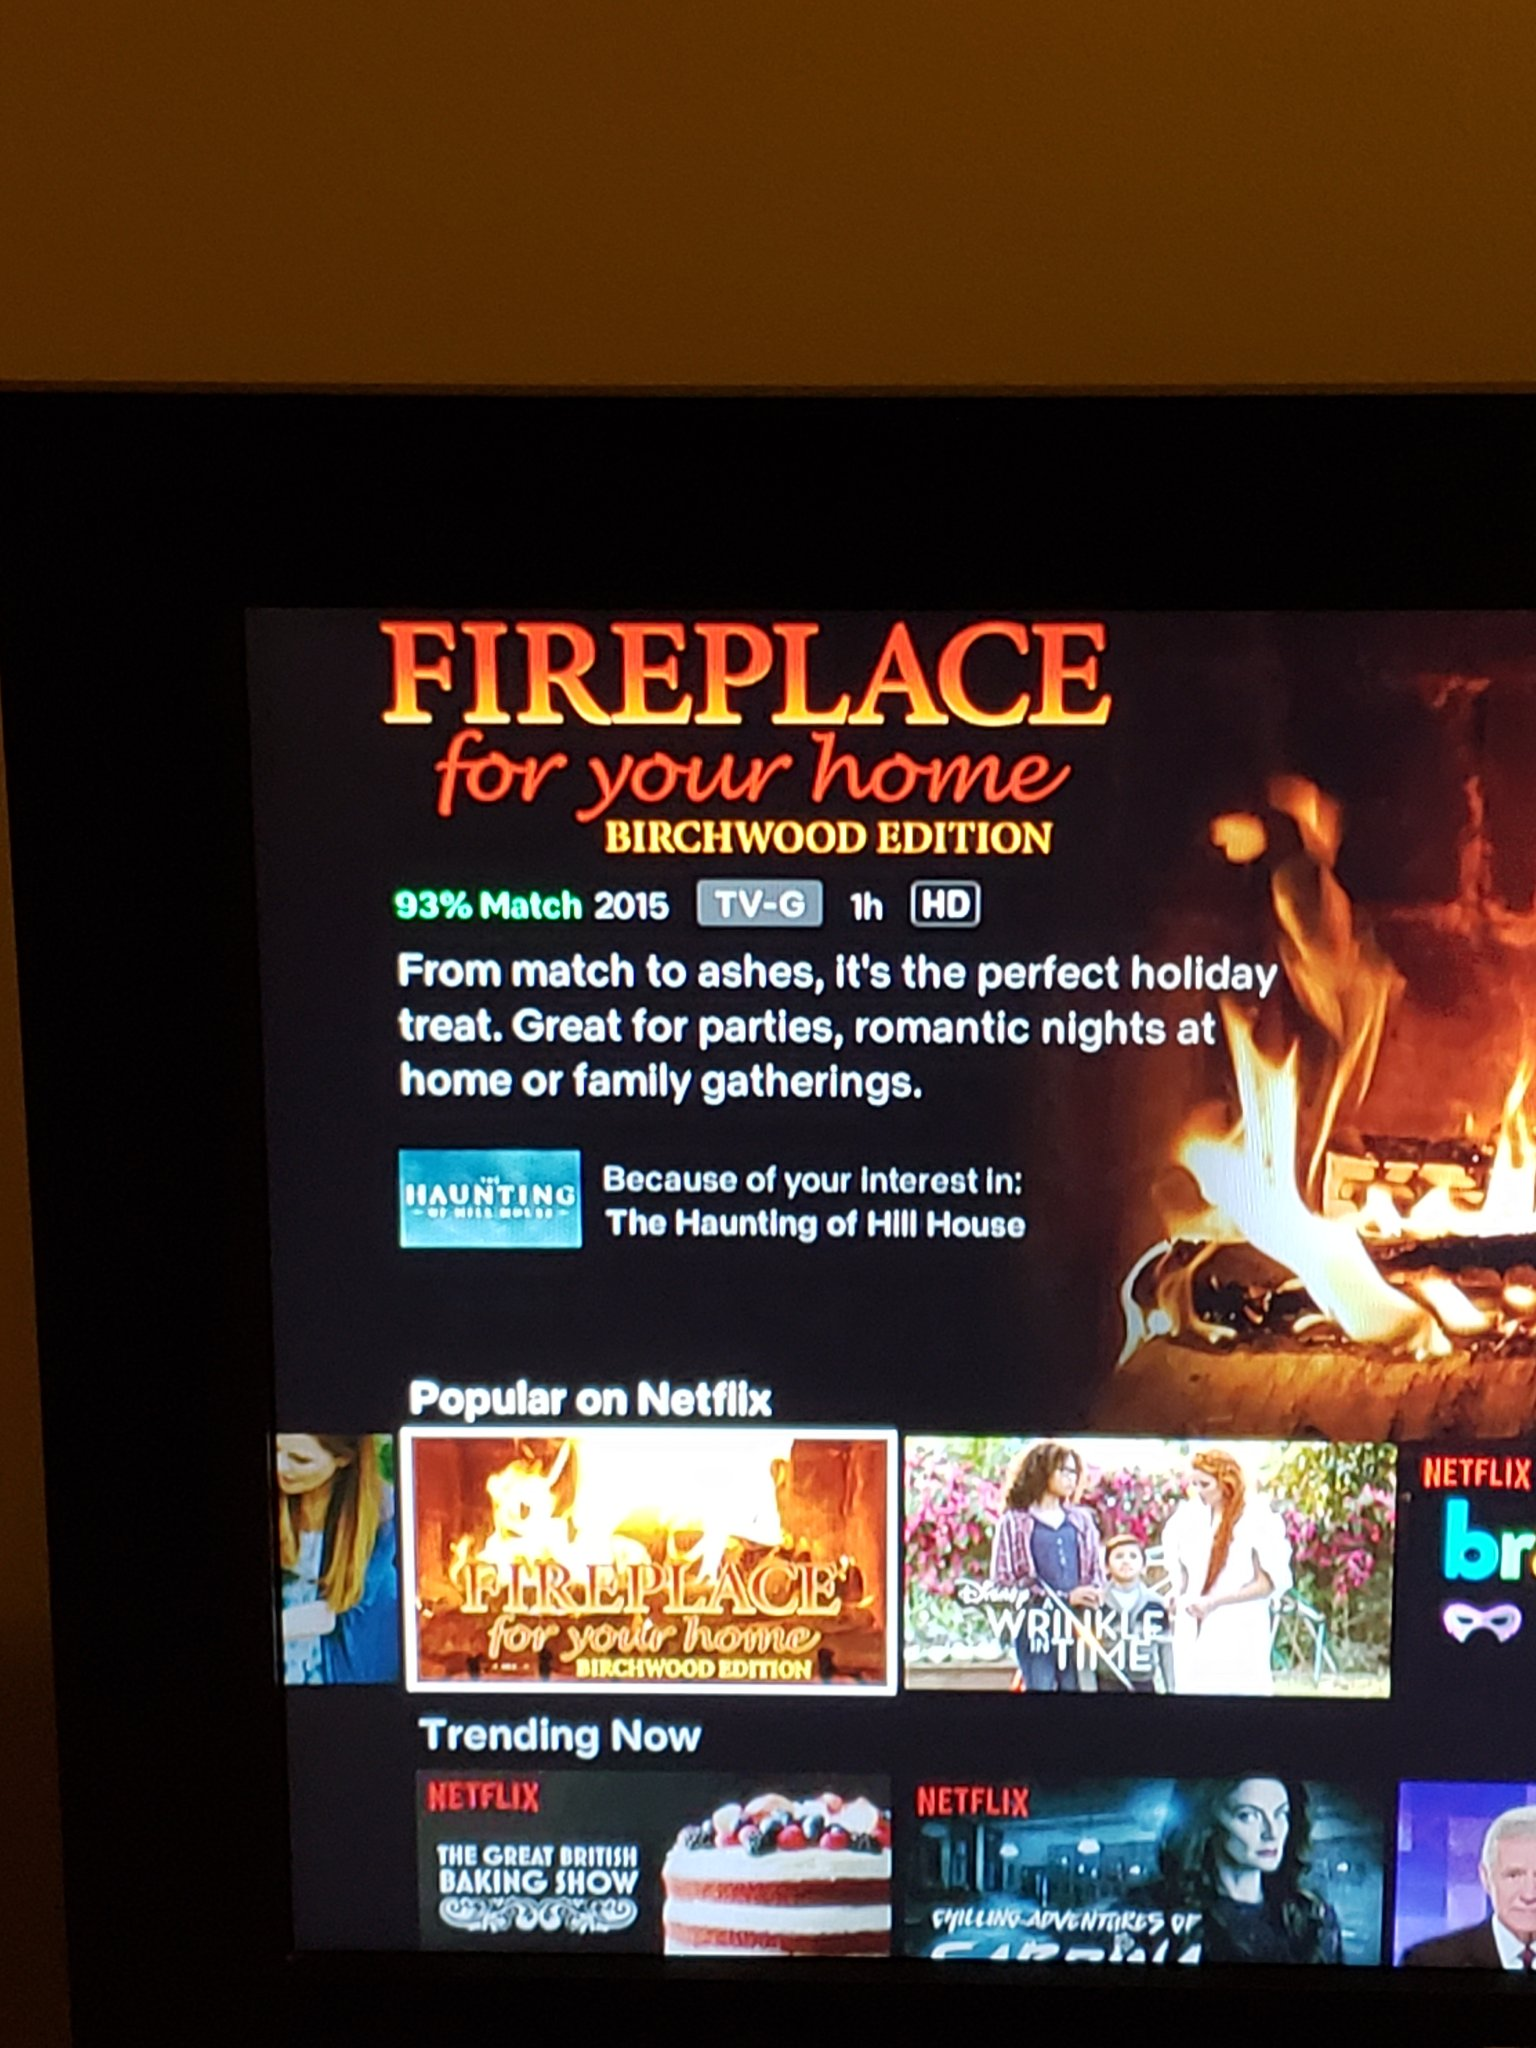 Wandering Witch On Twitter Fireplace For Your Home Birchwood Edition Recommended Because You Watched The Haunting Of Hill House Umm